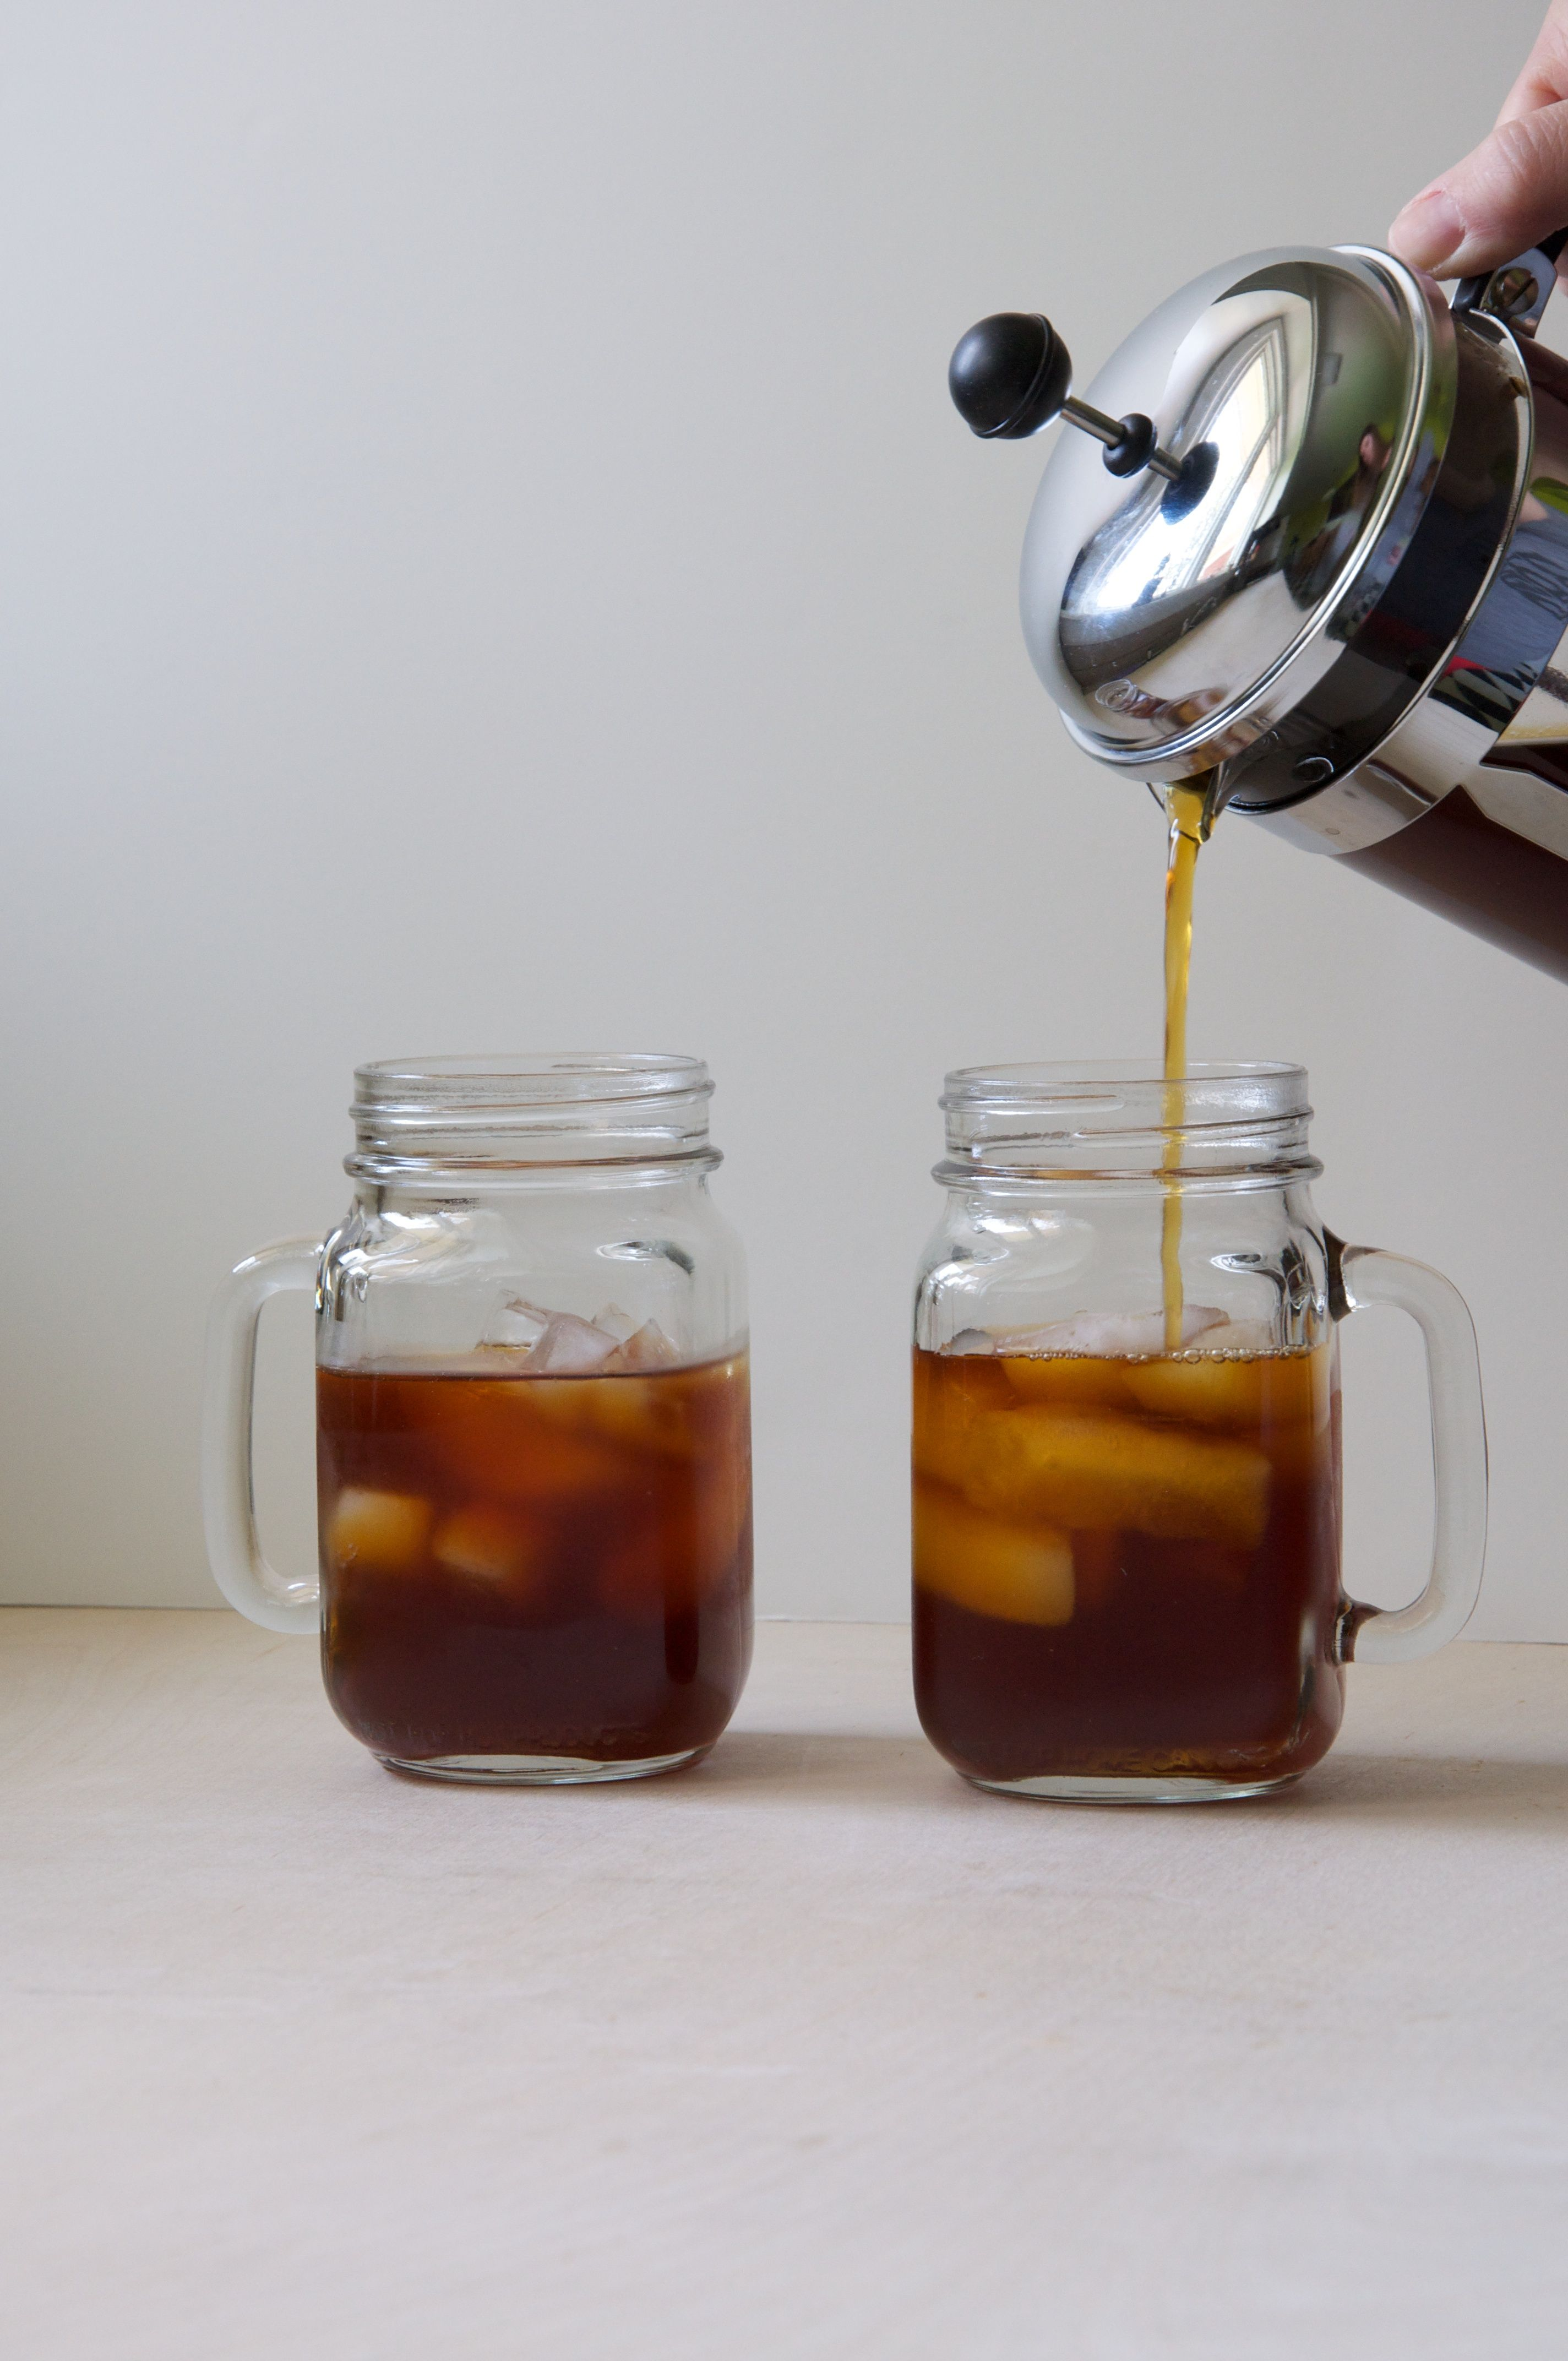 French Press Cold Brew Iced Coffee Recipe // @nicoledula